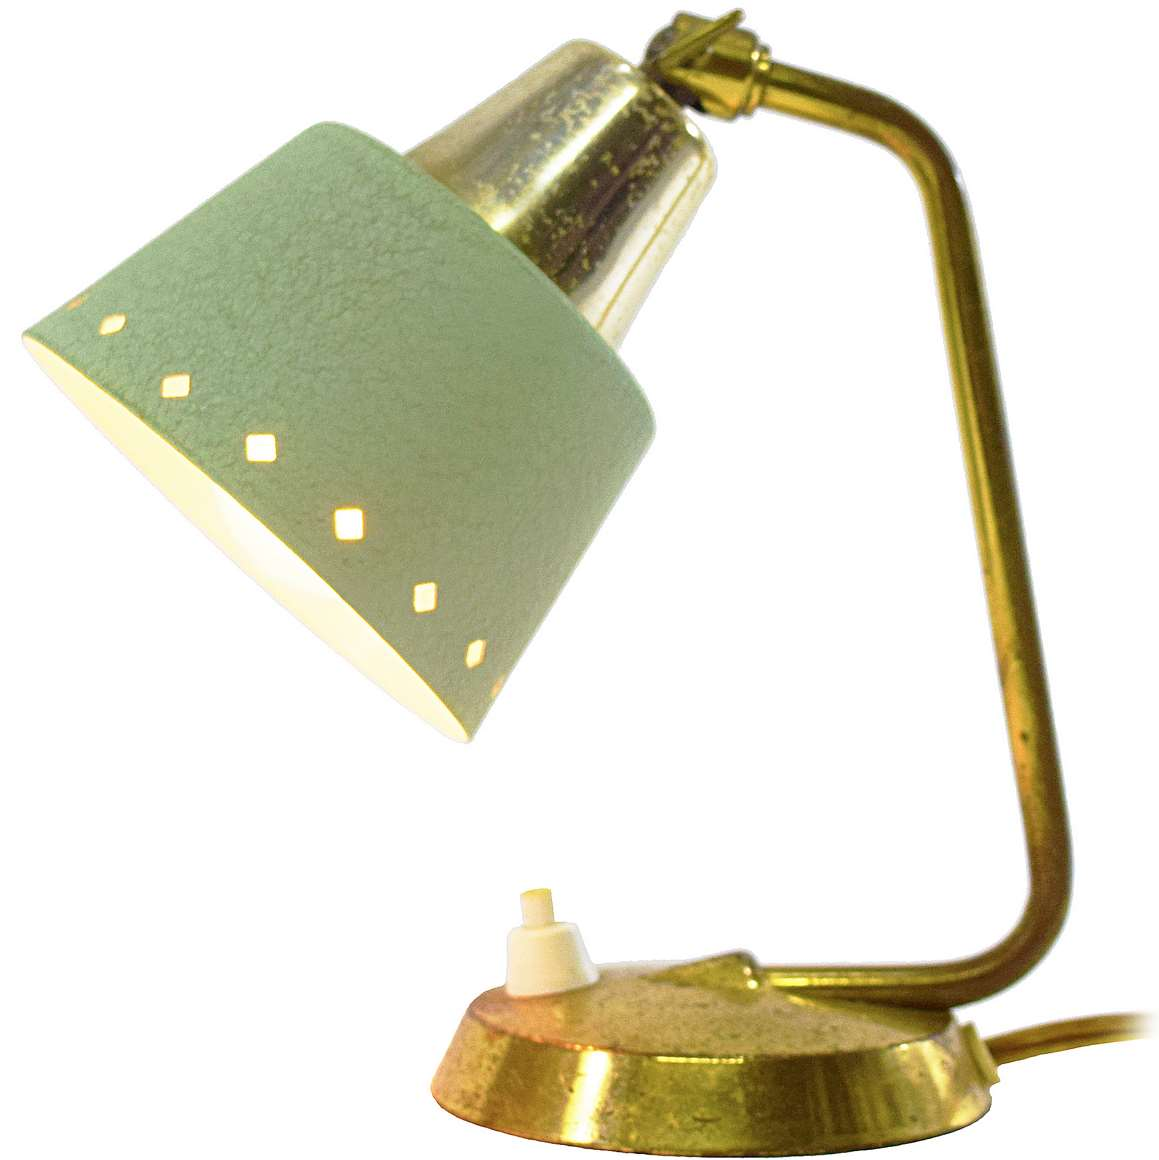 1950s perforated bedside lamp brass base & rod lampshade with diamond holes ERPEES Pfäffle Leuchten 1960s Germany